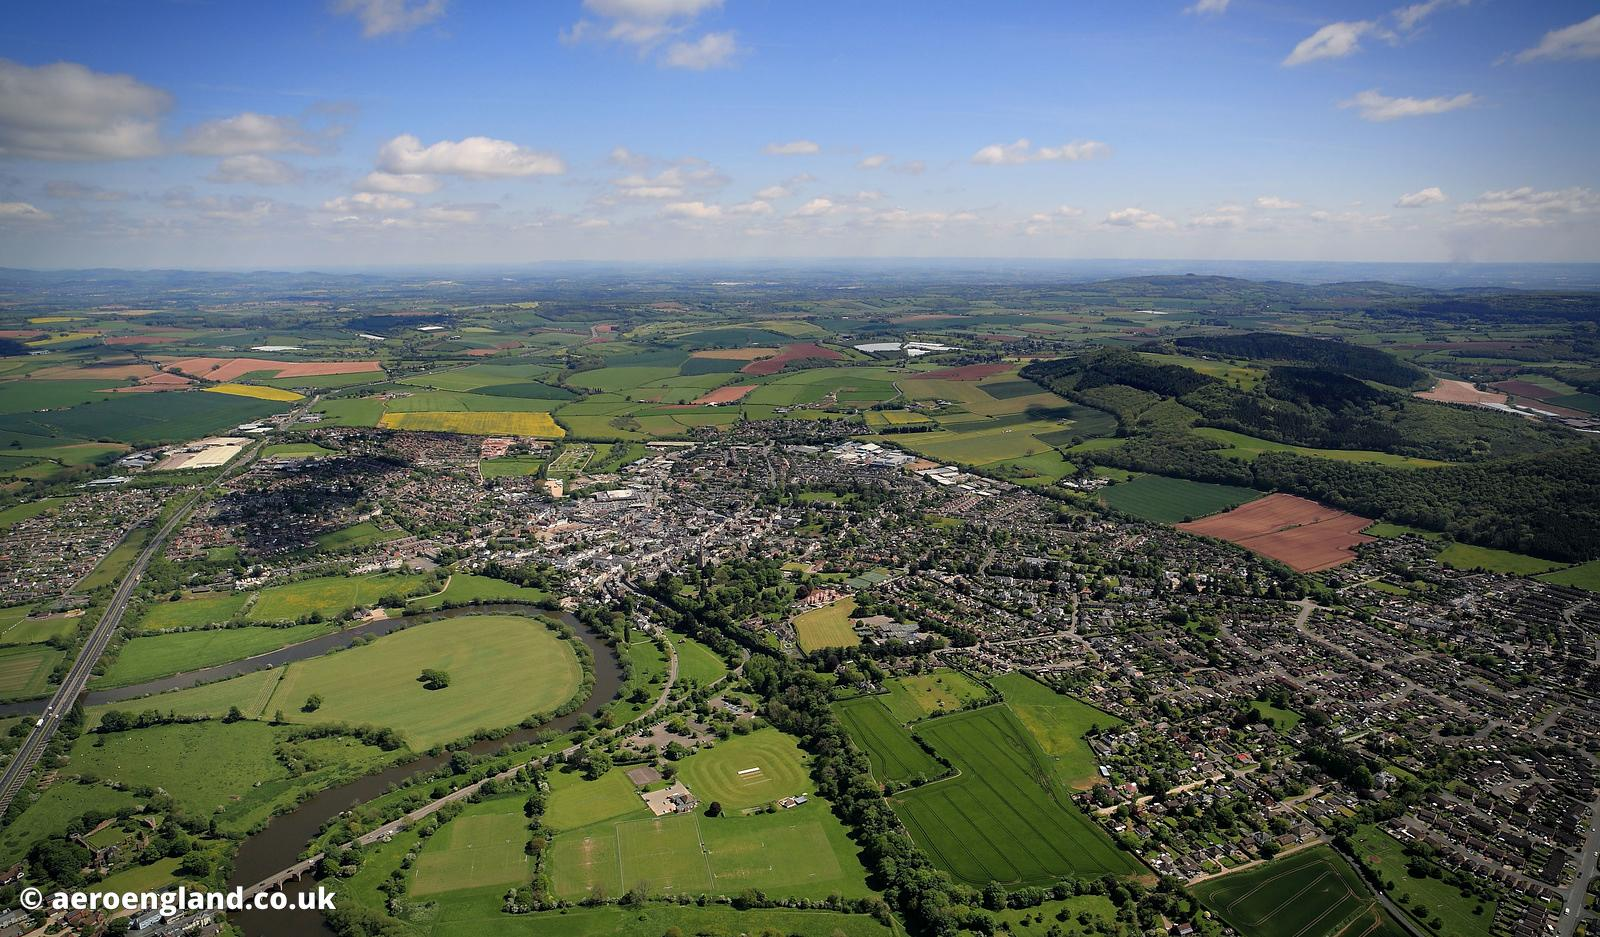 aerial photograph of Ross-on-Wye Herefordshire England UK